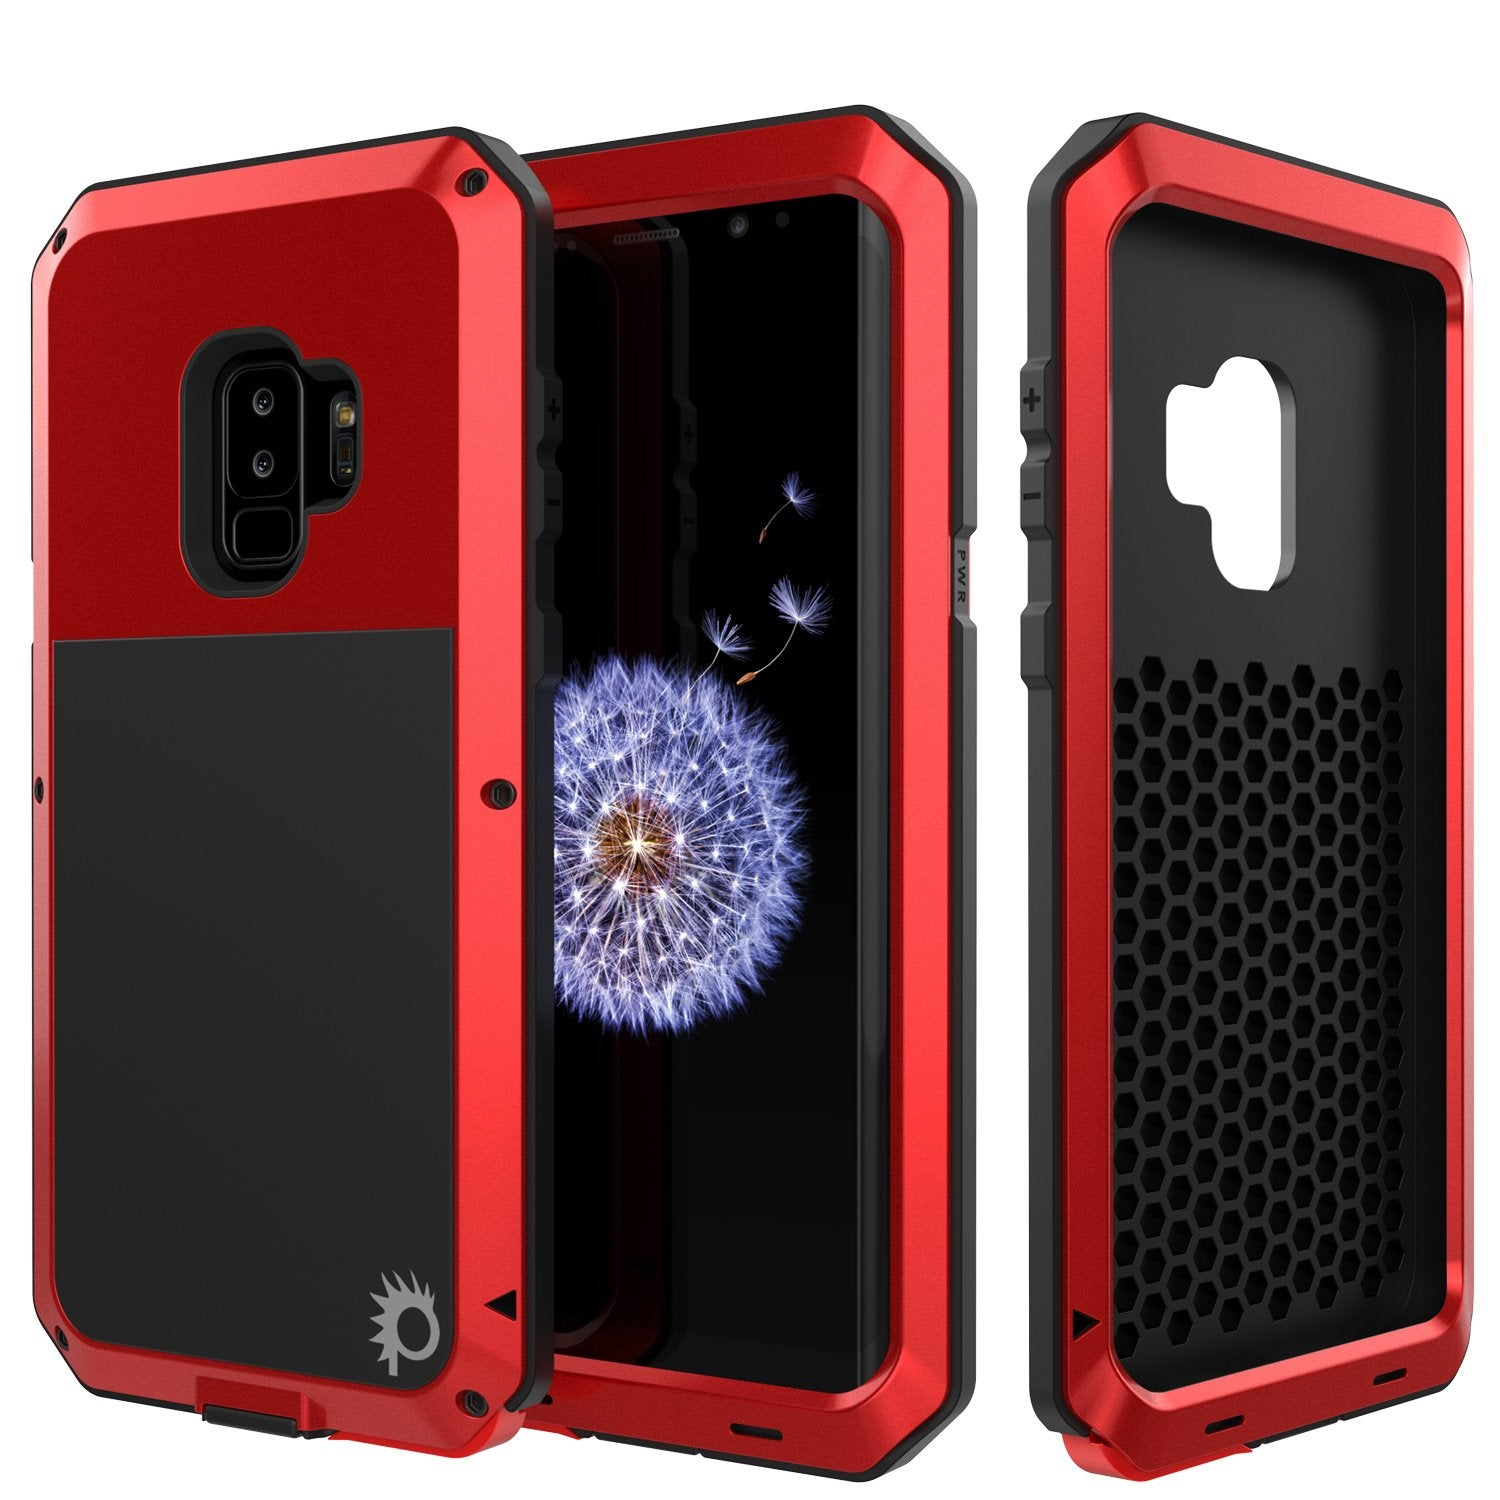 Galaxy S9 Plus Metal Case, Heavy Duty Military Grade Rugged Case, Red